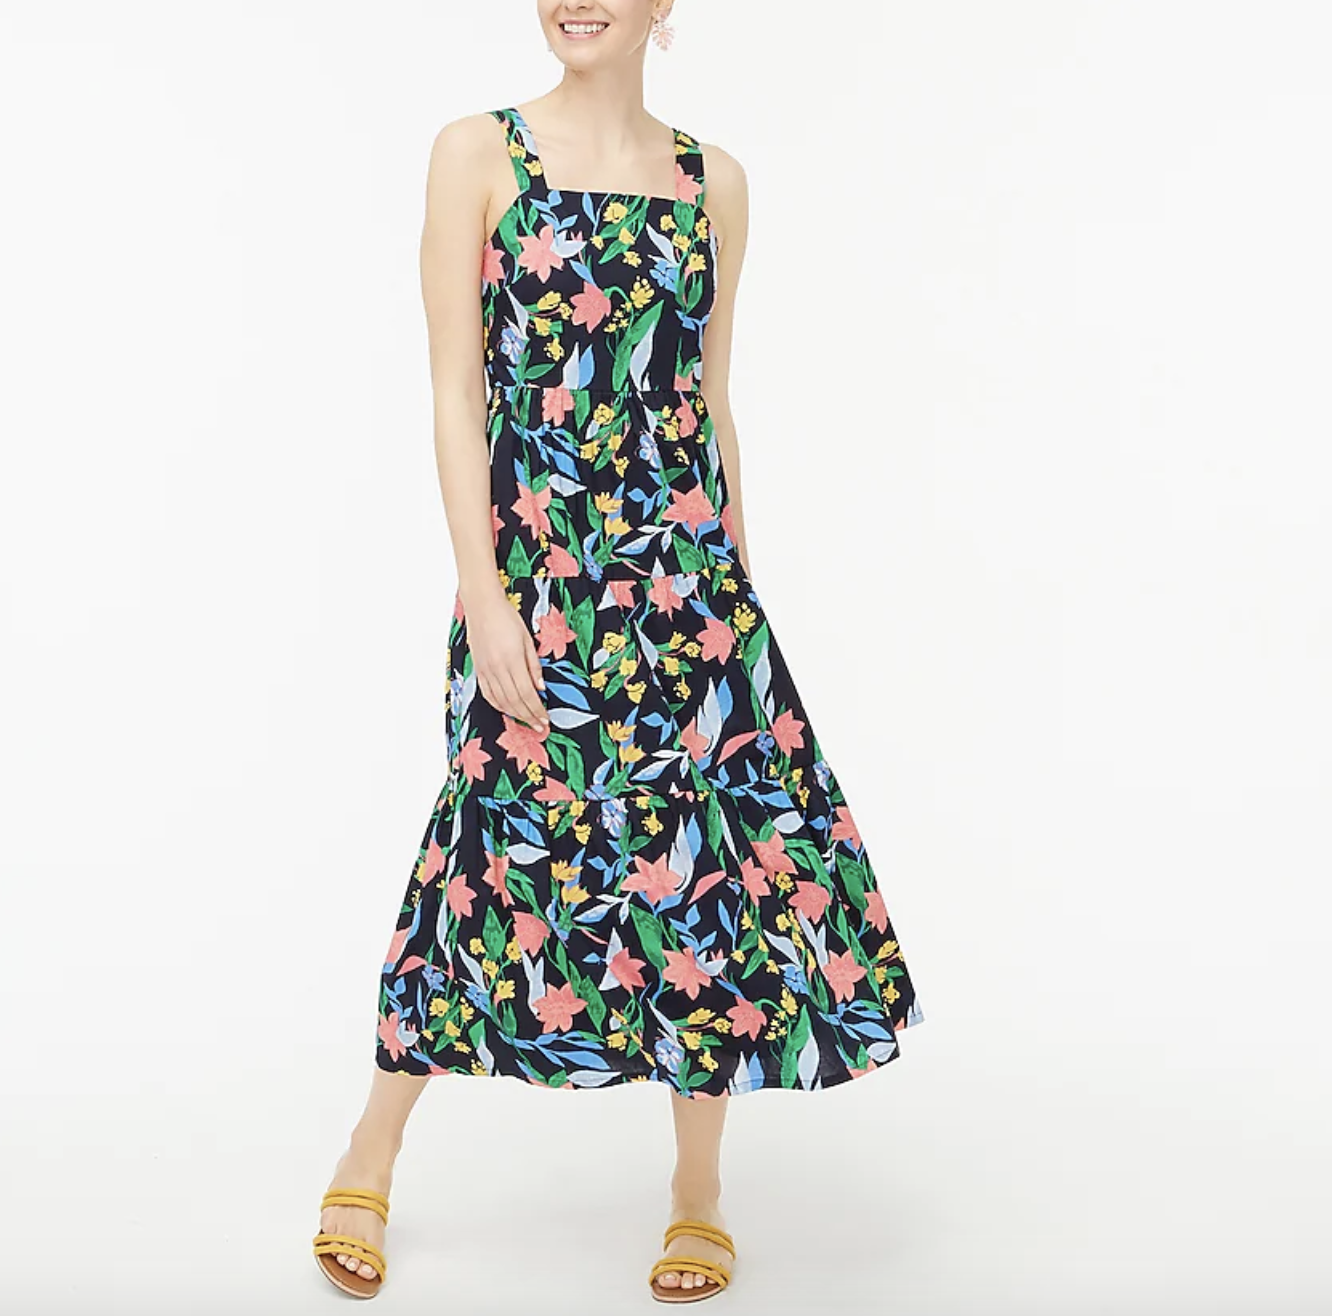 the dress, which is black with a floral pattern